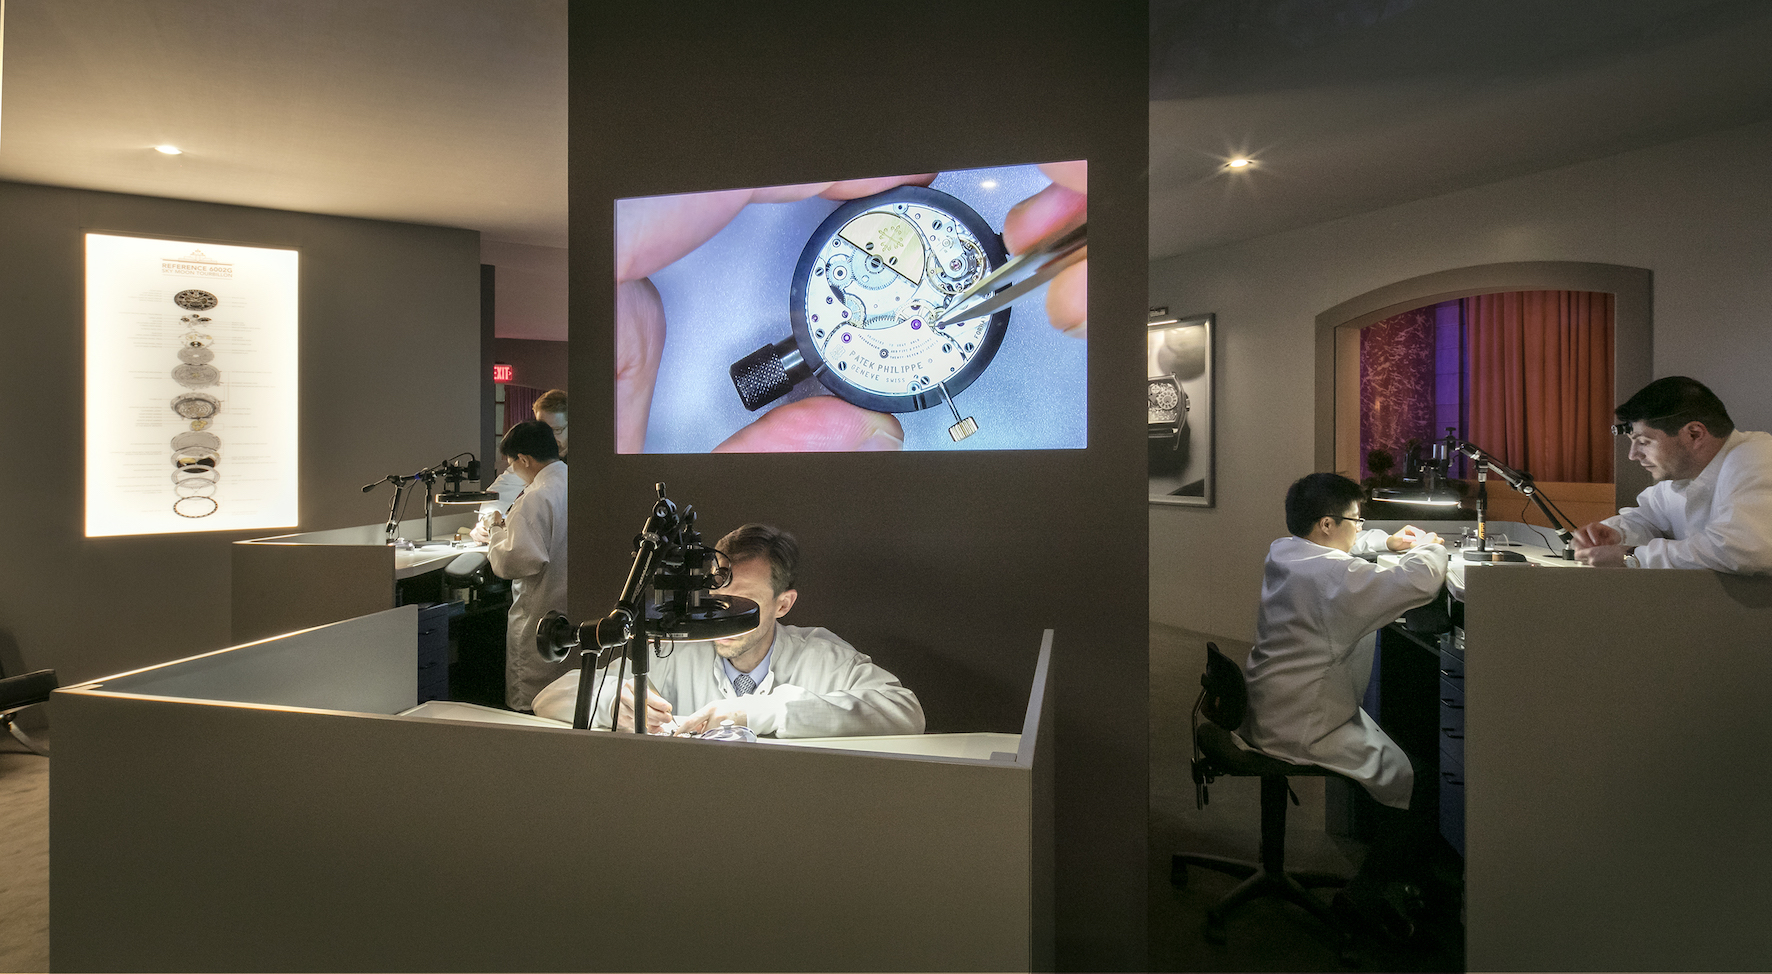 Watch repair specialists in the Watchmakers Room